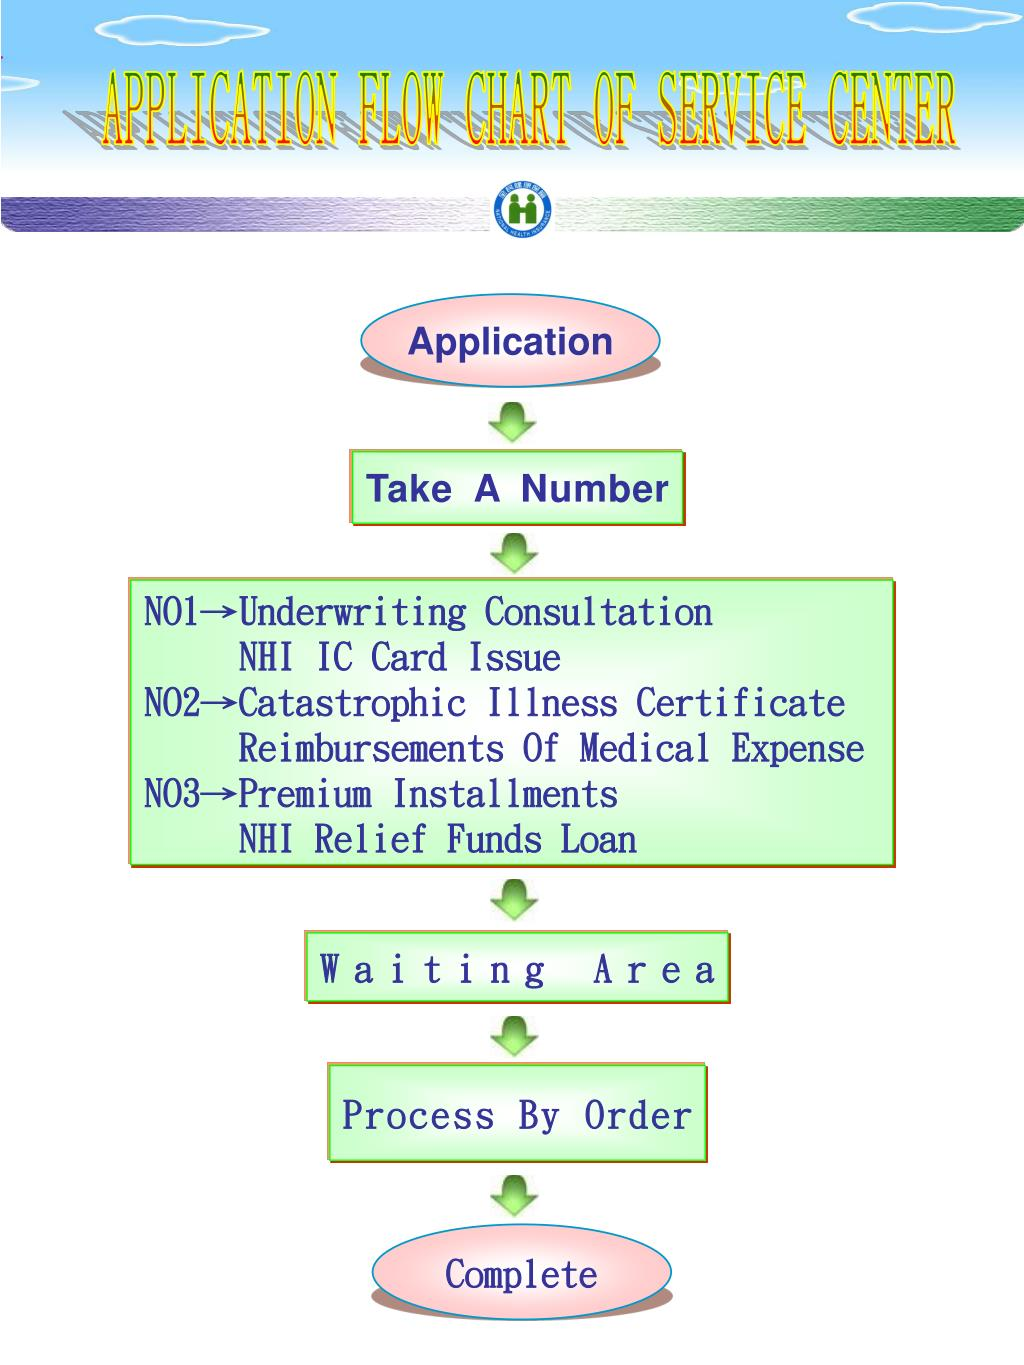 APPLICATION FLOW CHART OF SERVICE CENTER